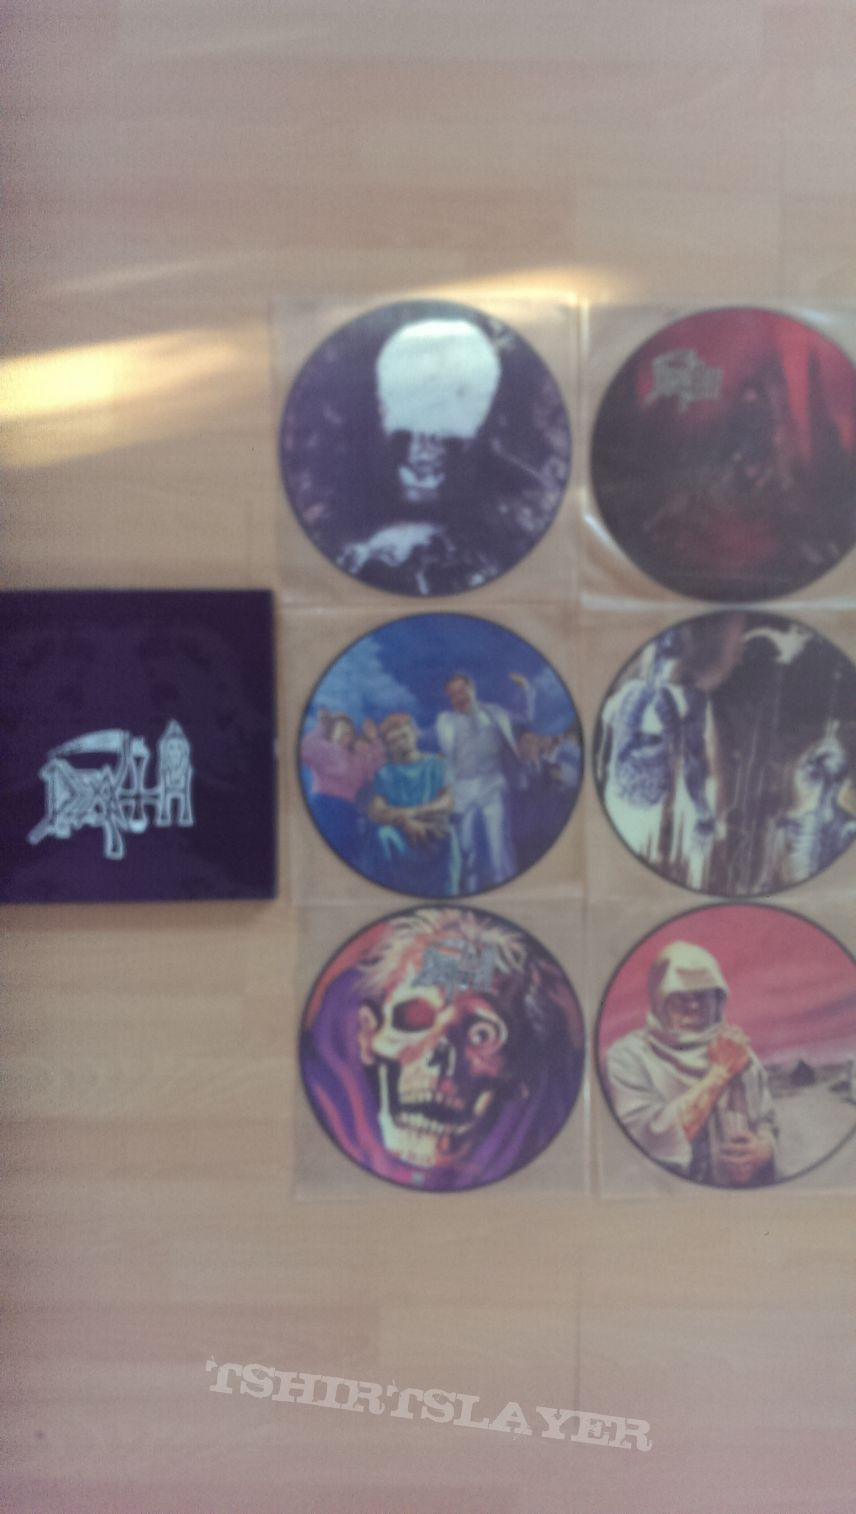 DEATH - picture Lp box